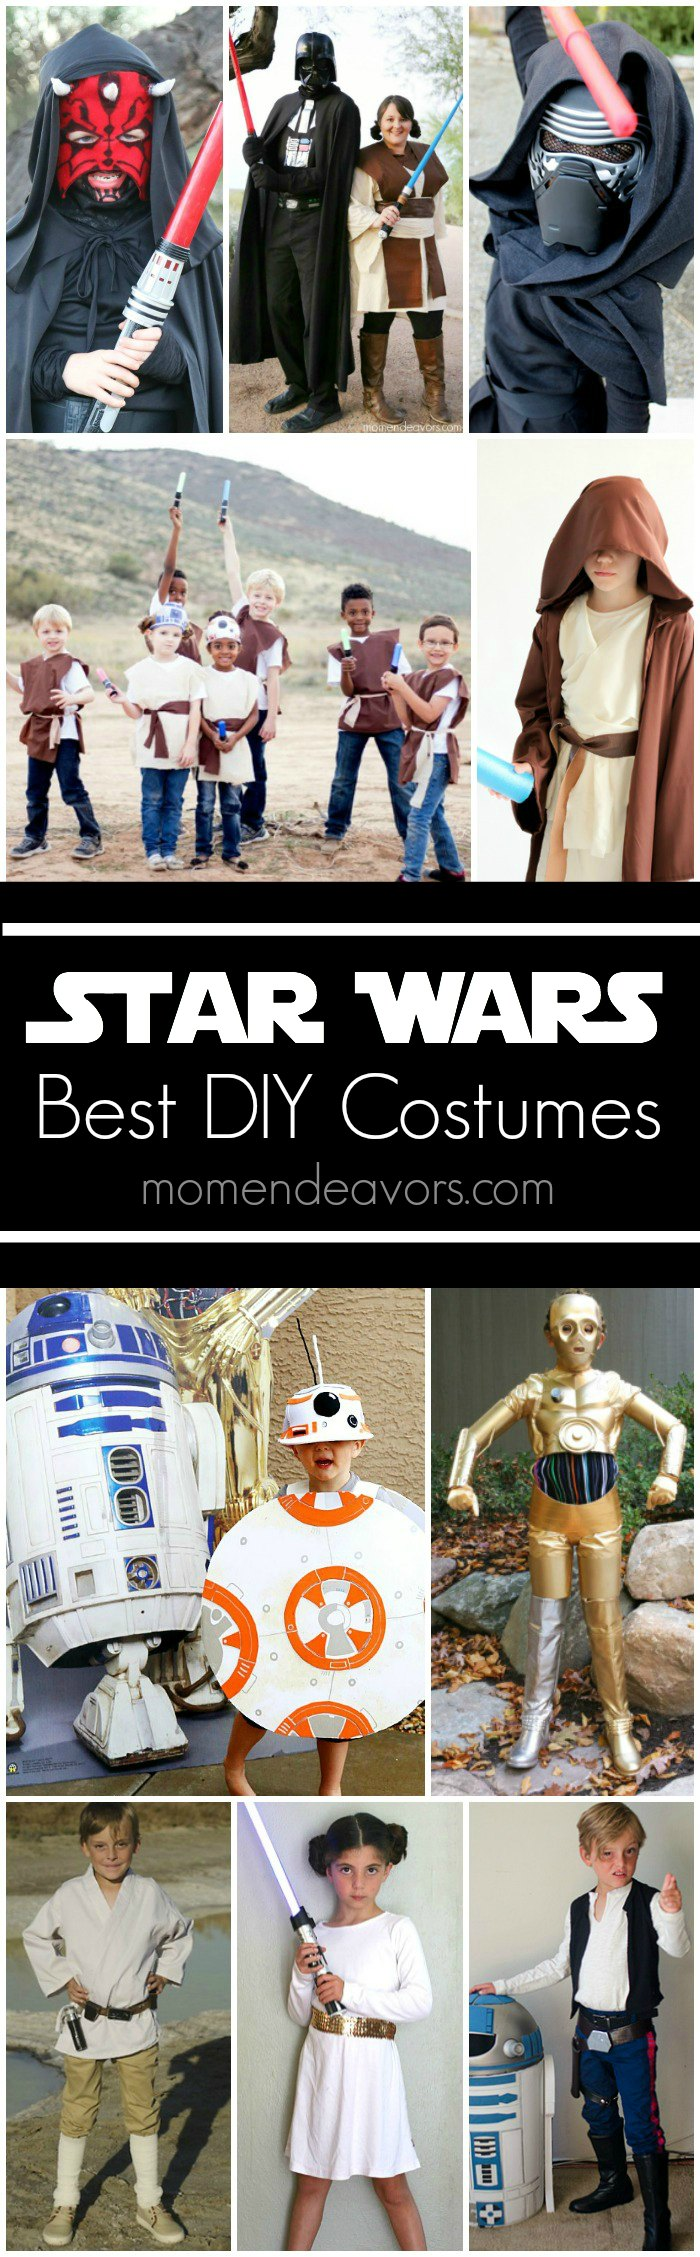 Best DIY Star Wars Costumes